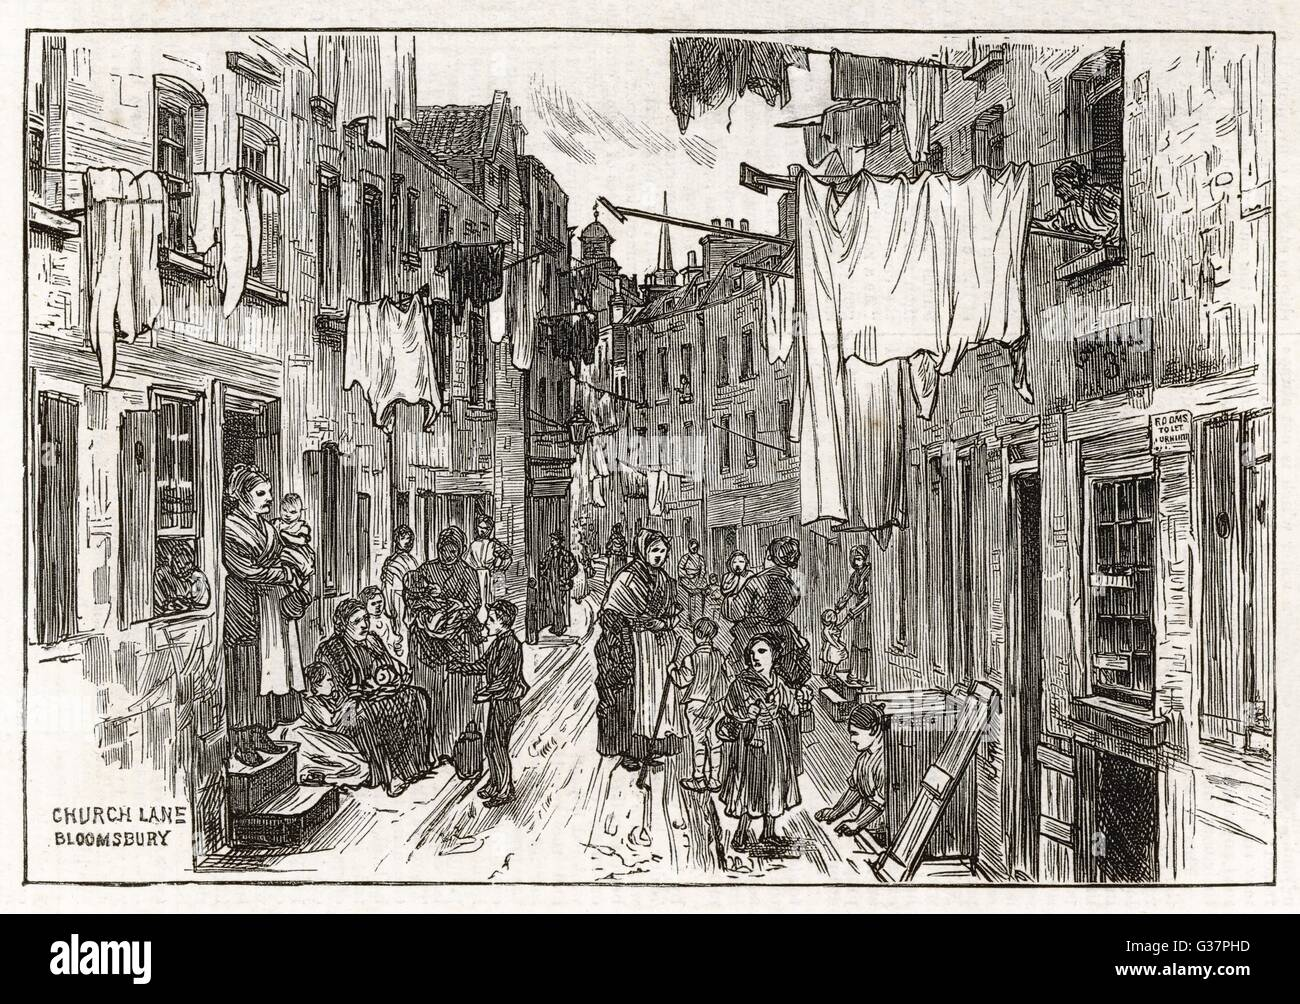 Street scene in Church Lane,  Bloomsbury, London - mothers and children        Date: 1875 - Stock Image